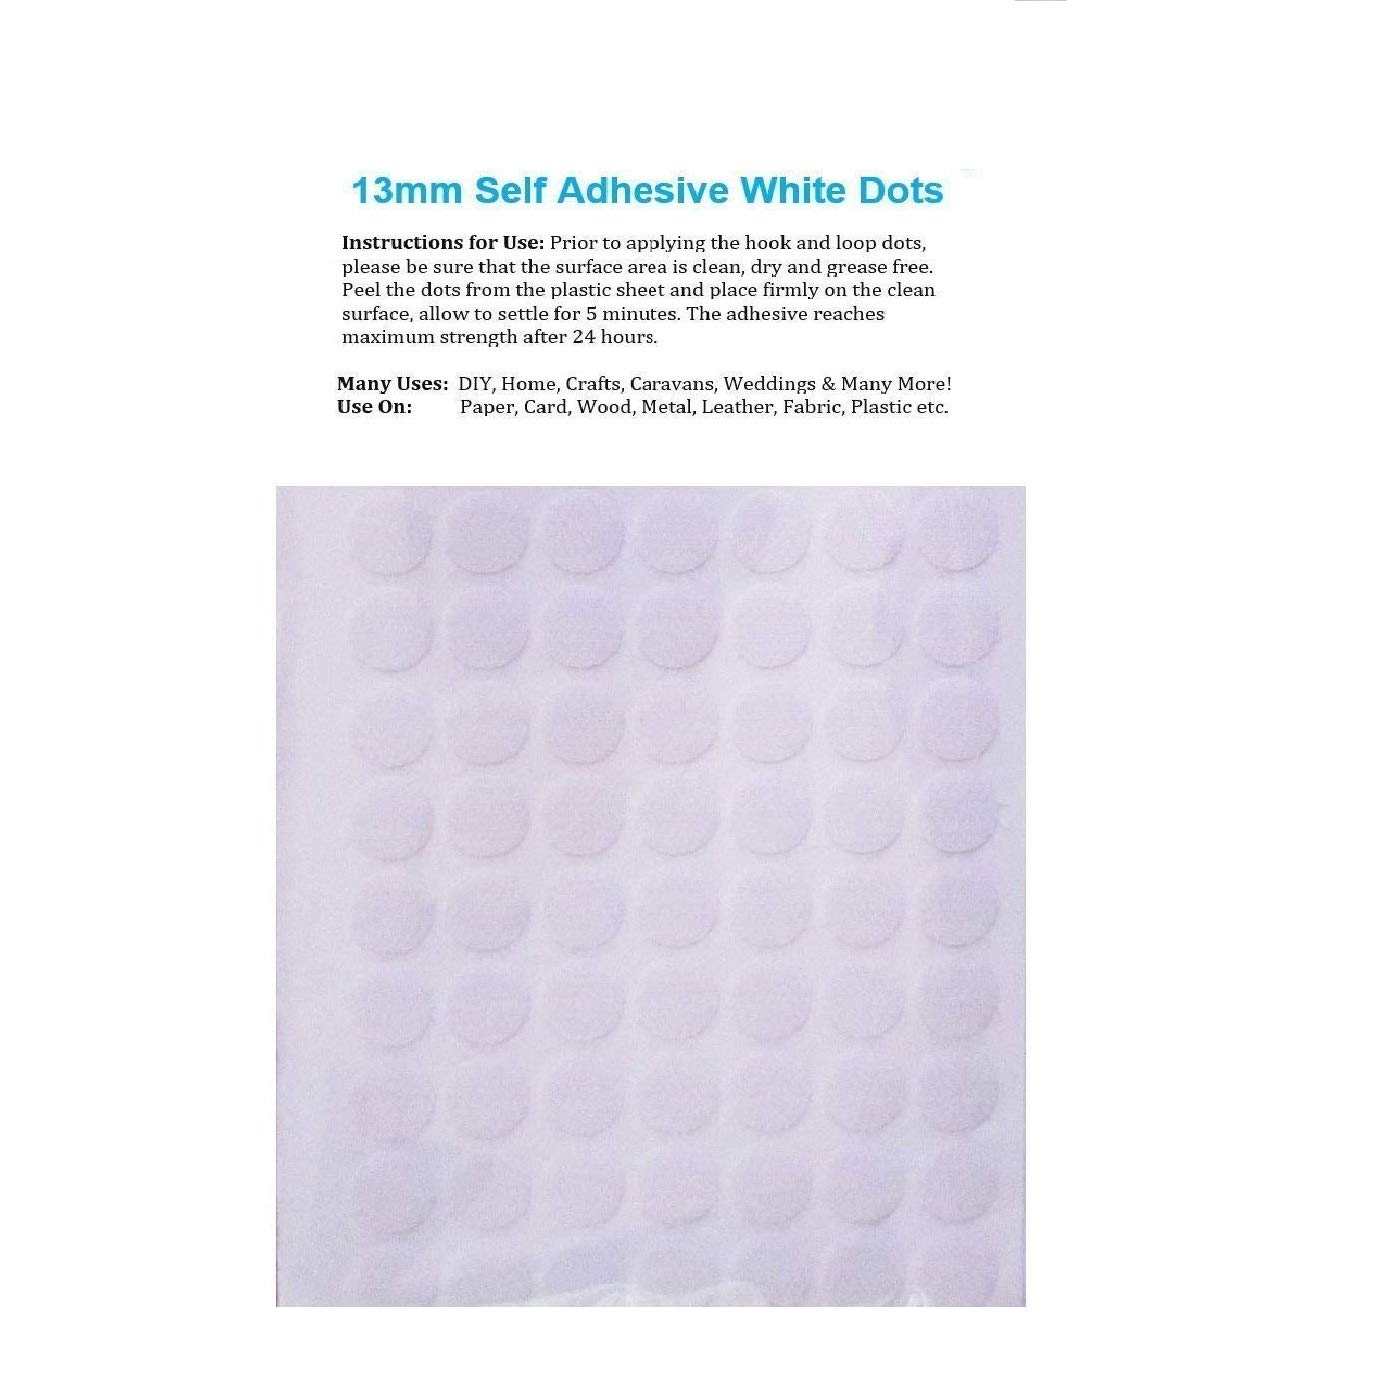 200 x 13mm Hook and Loop Self Adhesive White Coins Dots 100 Hook & 100 Loop Specialist tapes uk